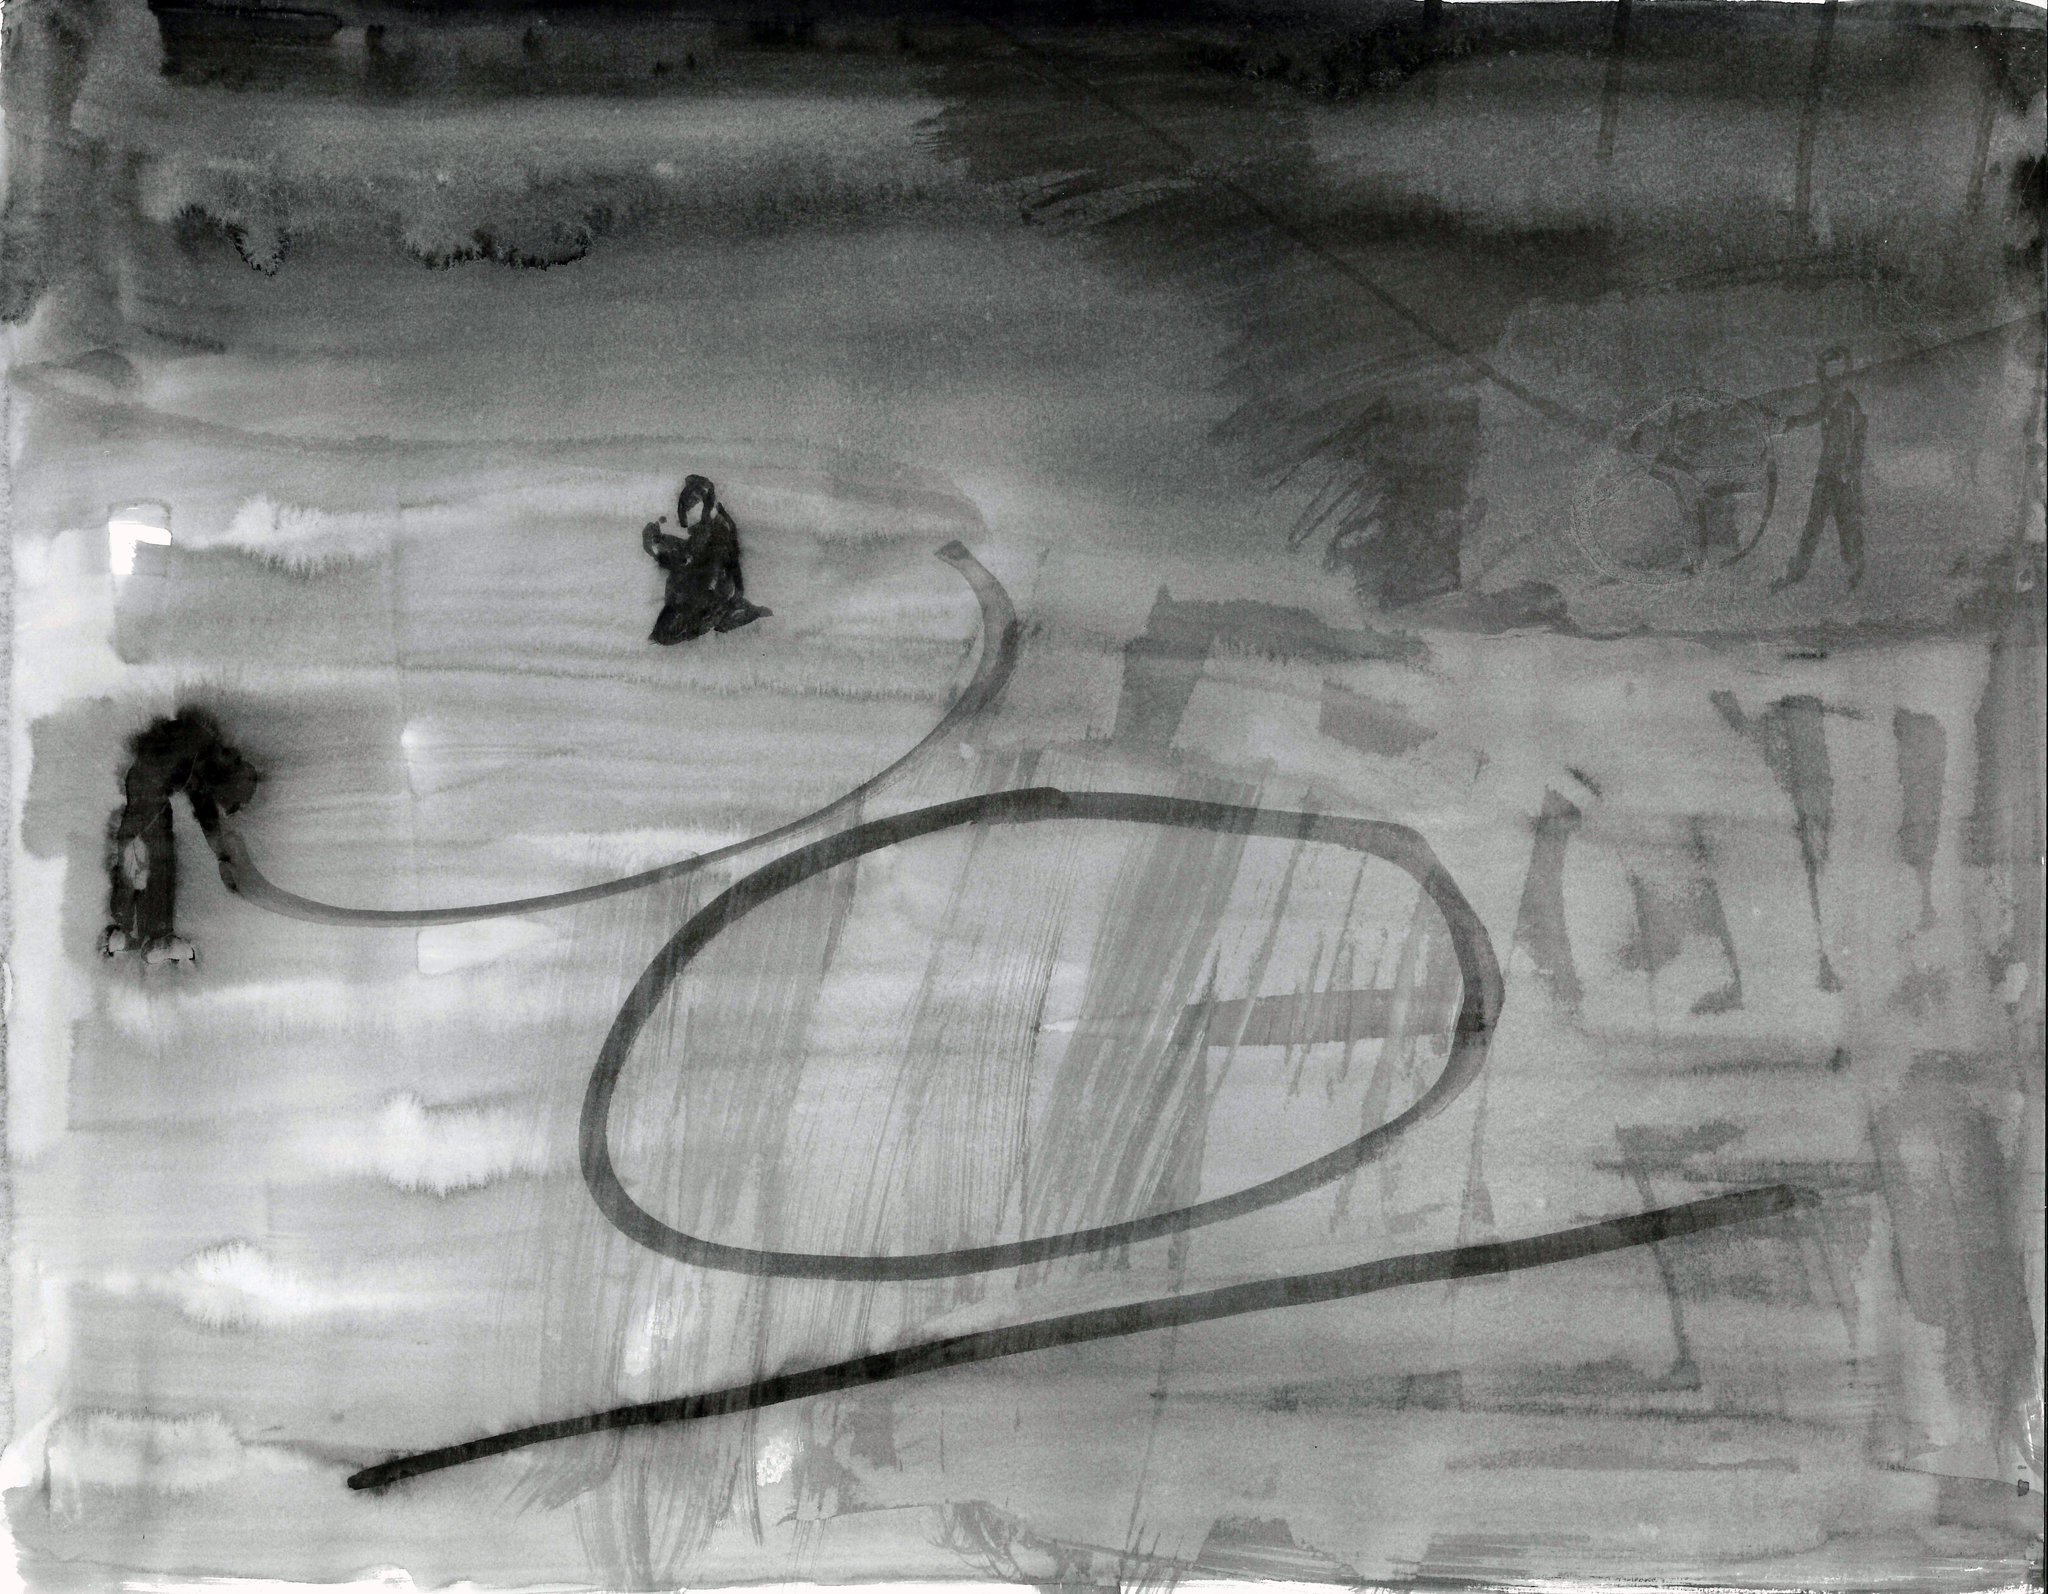 """Sketch for Schattentheater (Chalk circles),"" a sketch by Silke Otto-Knappe at REDCAT."